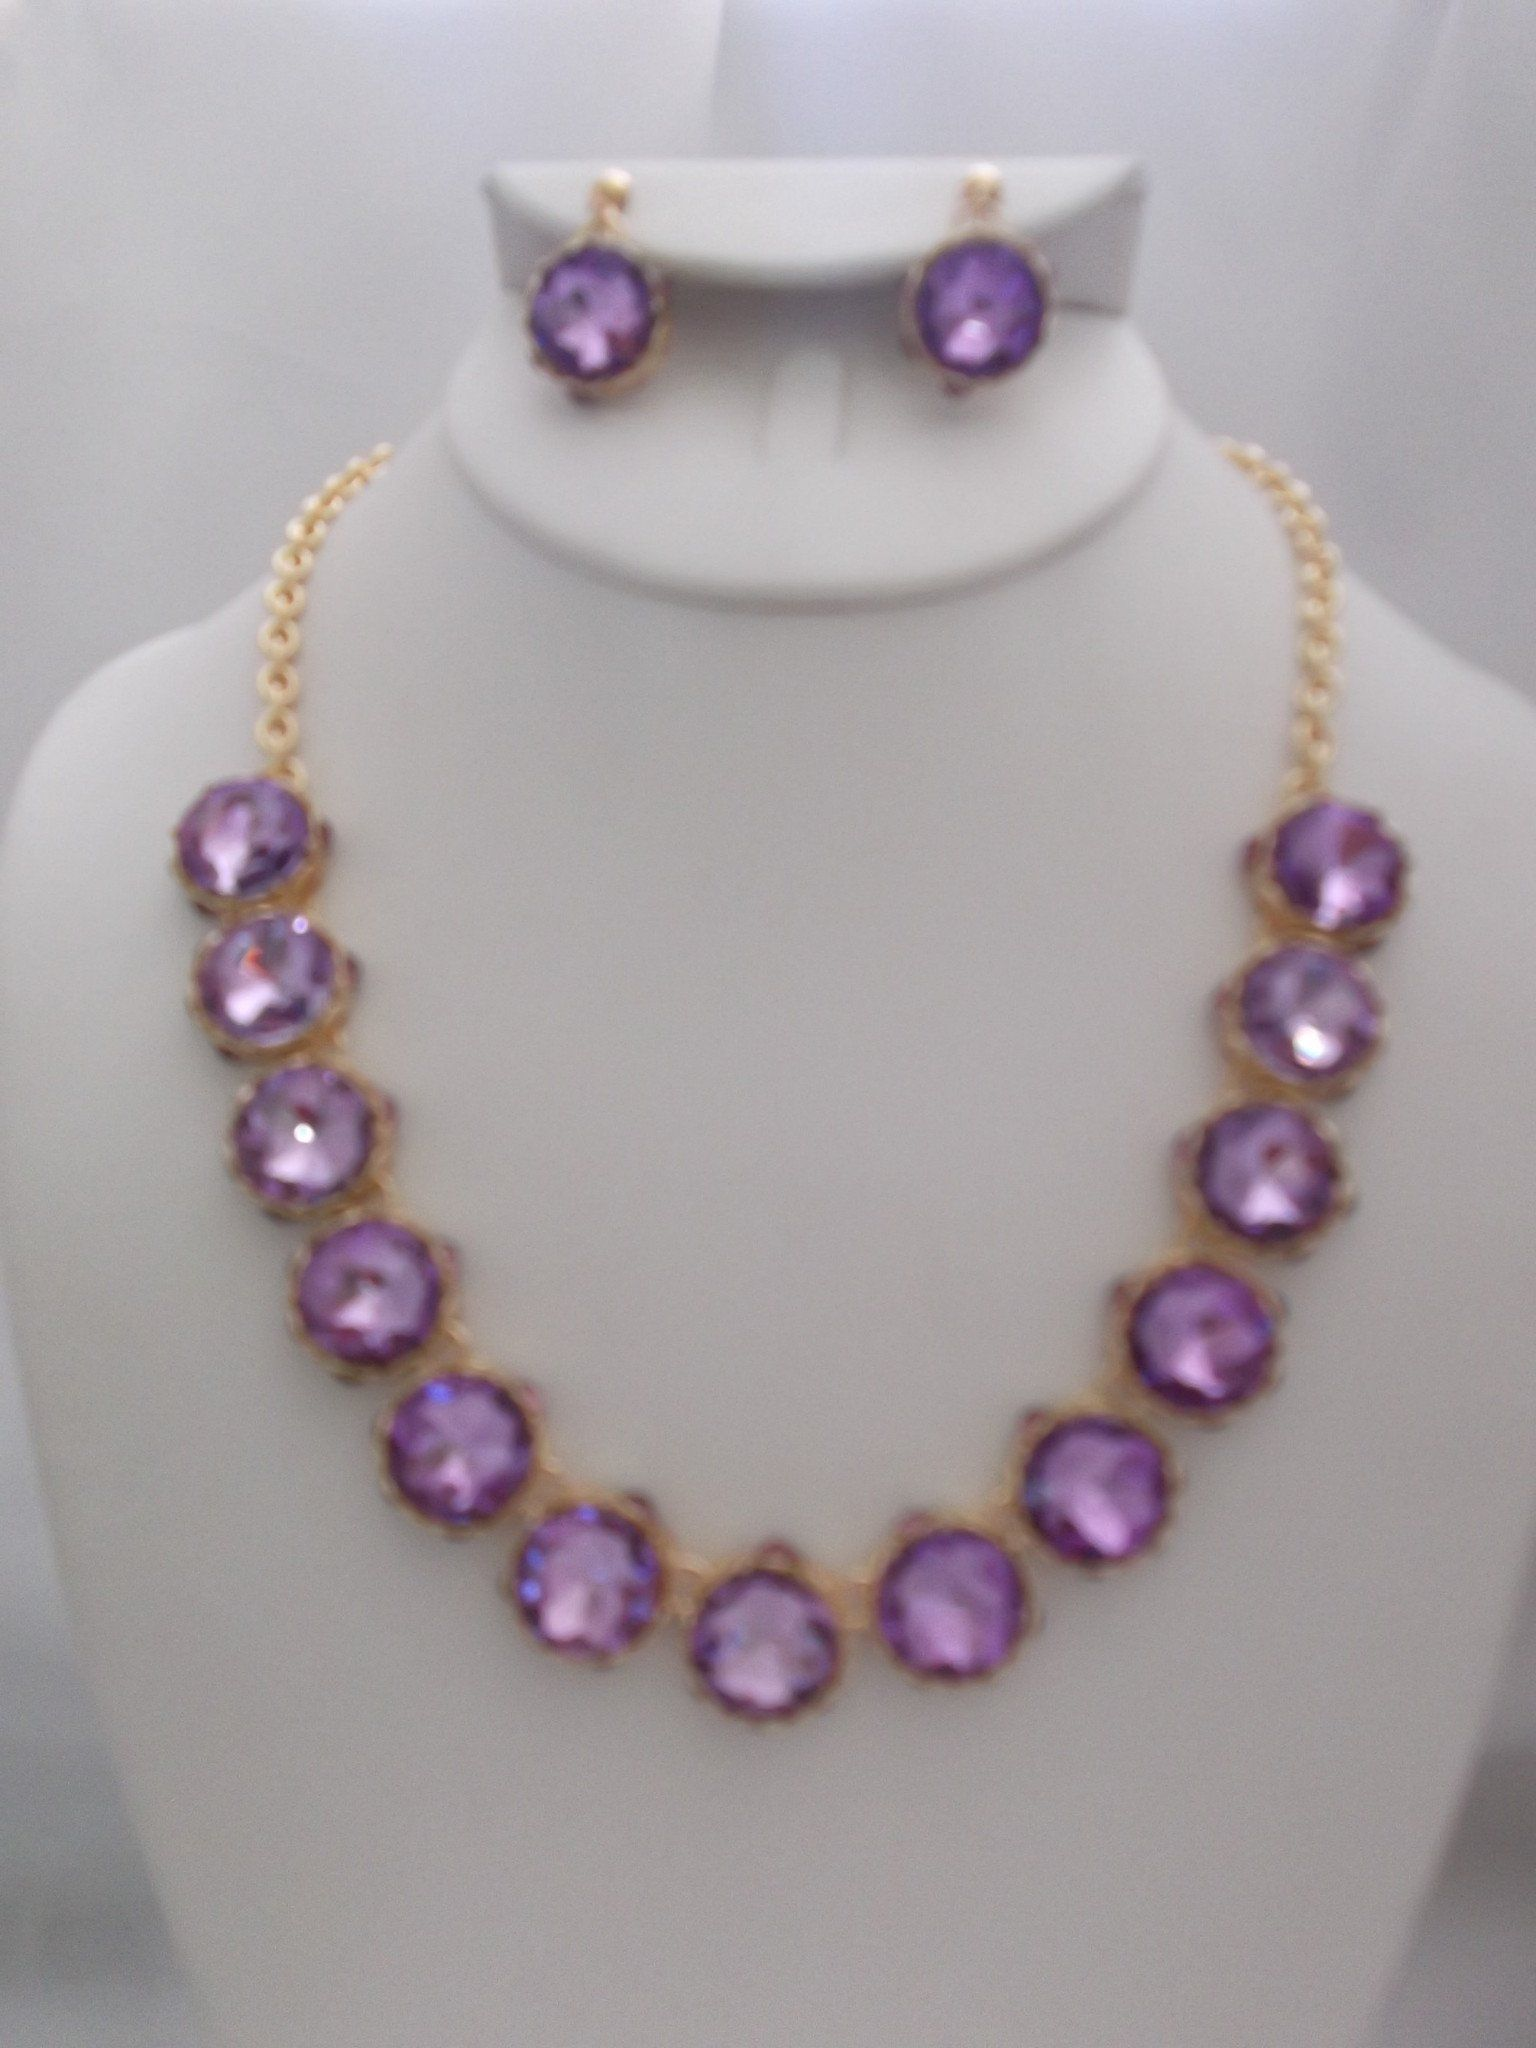 necklace free statement stone overstock inch glam purple candy set today watches jewelry la shipping eye product